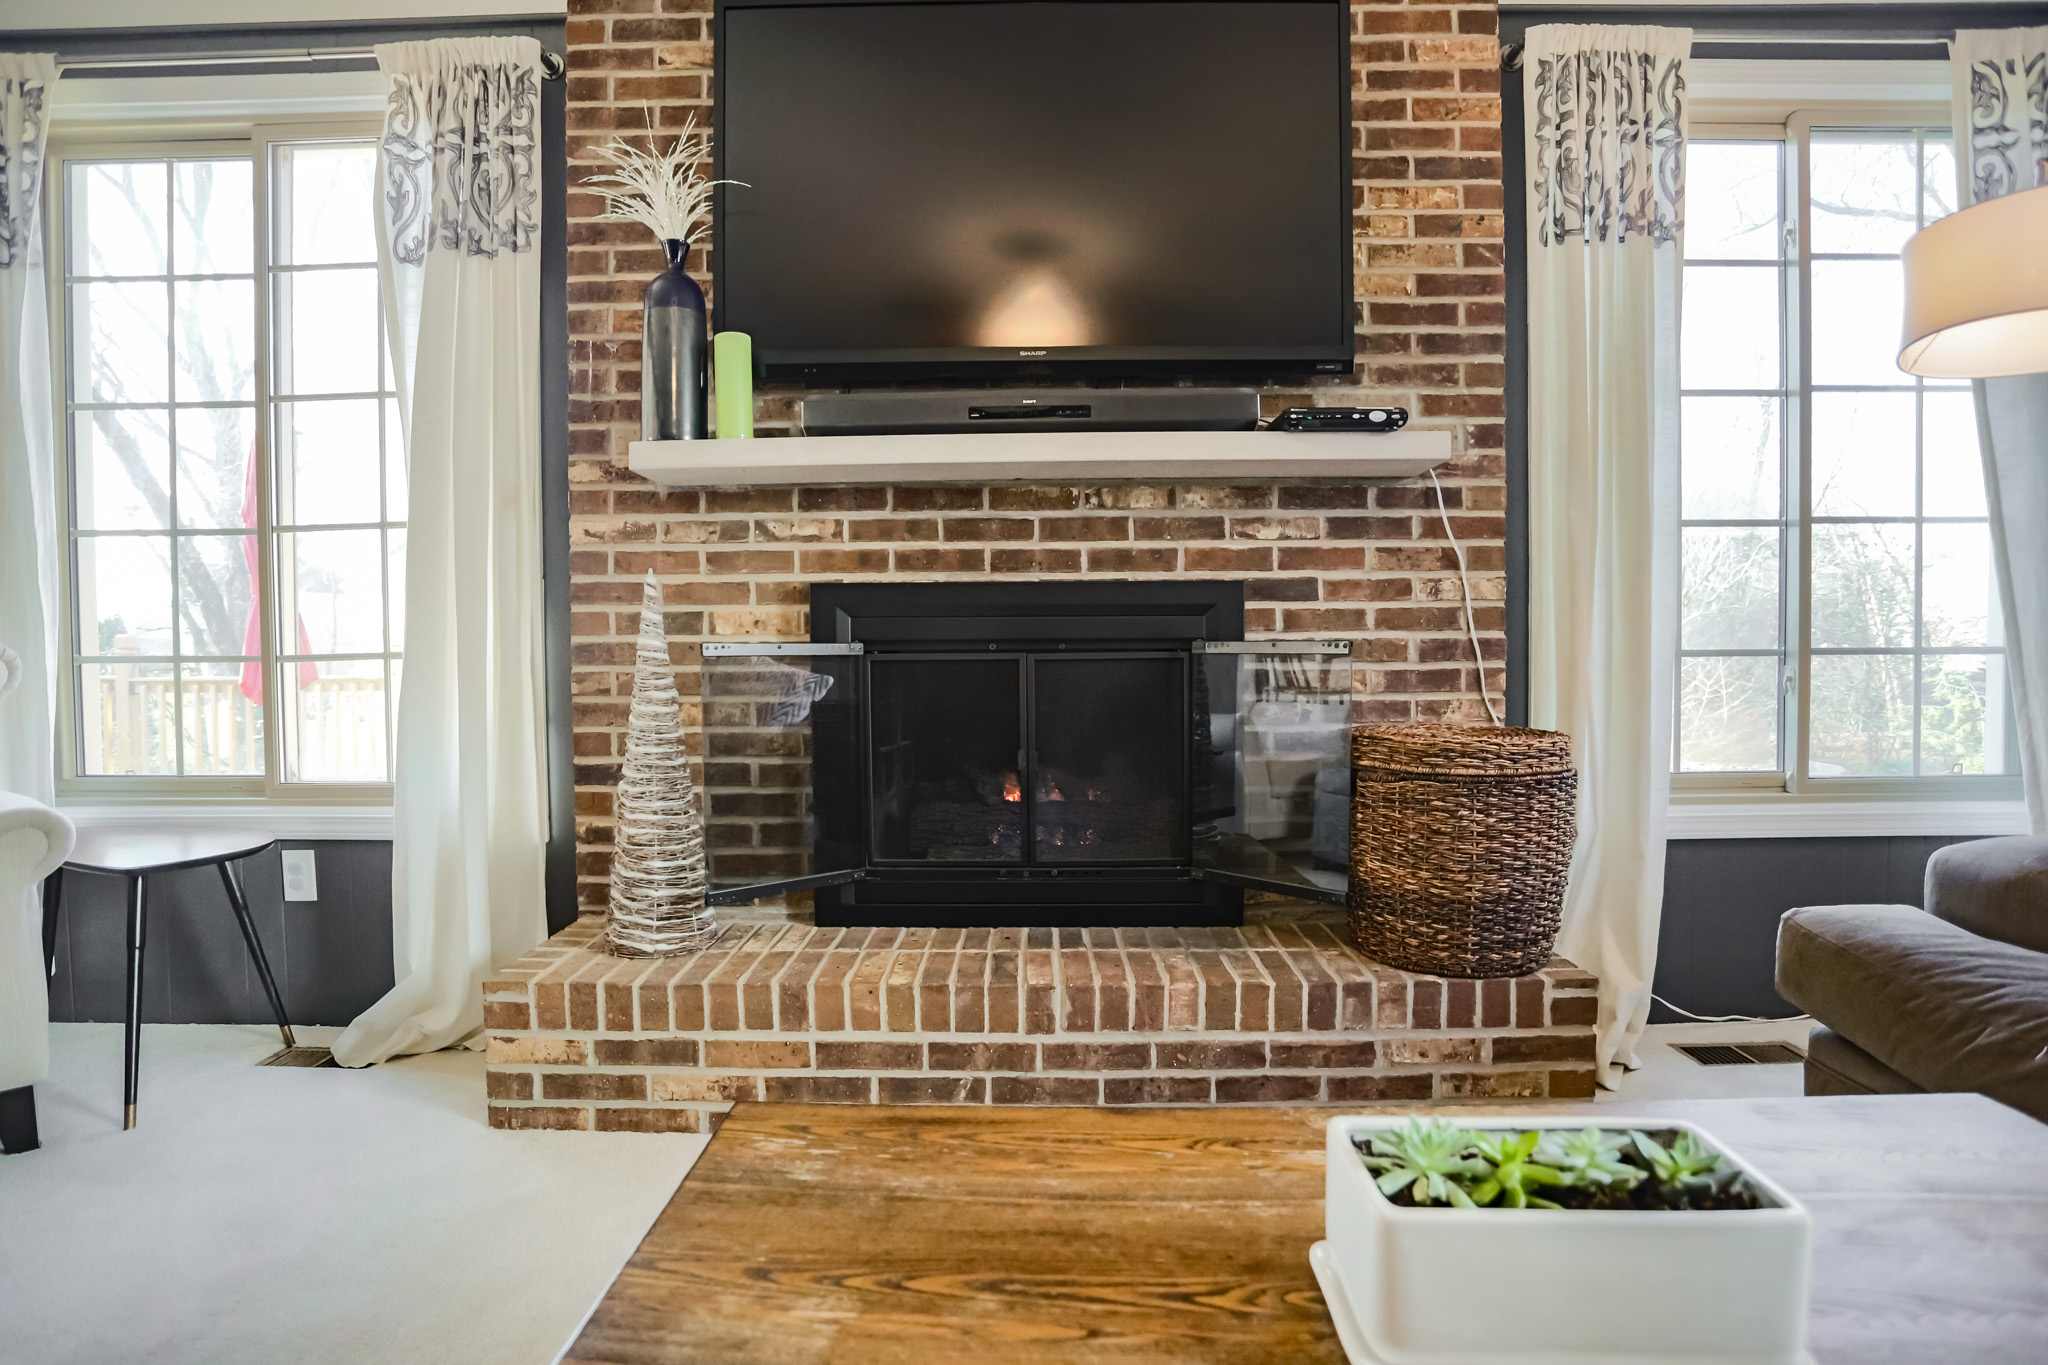 Our beautiful family room fireplace.